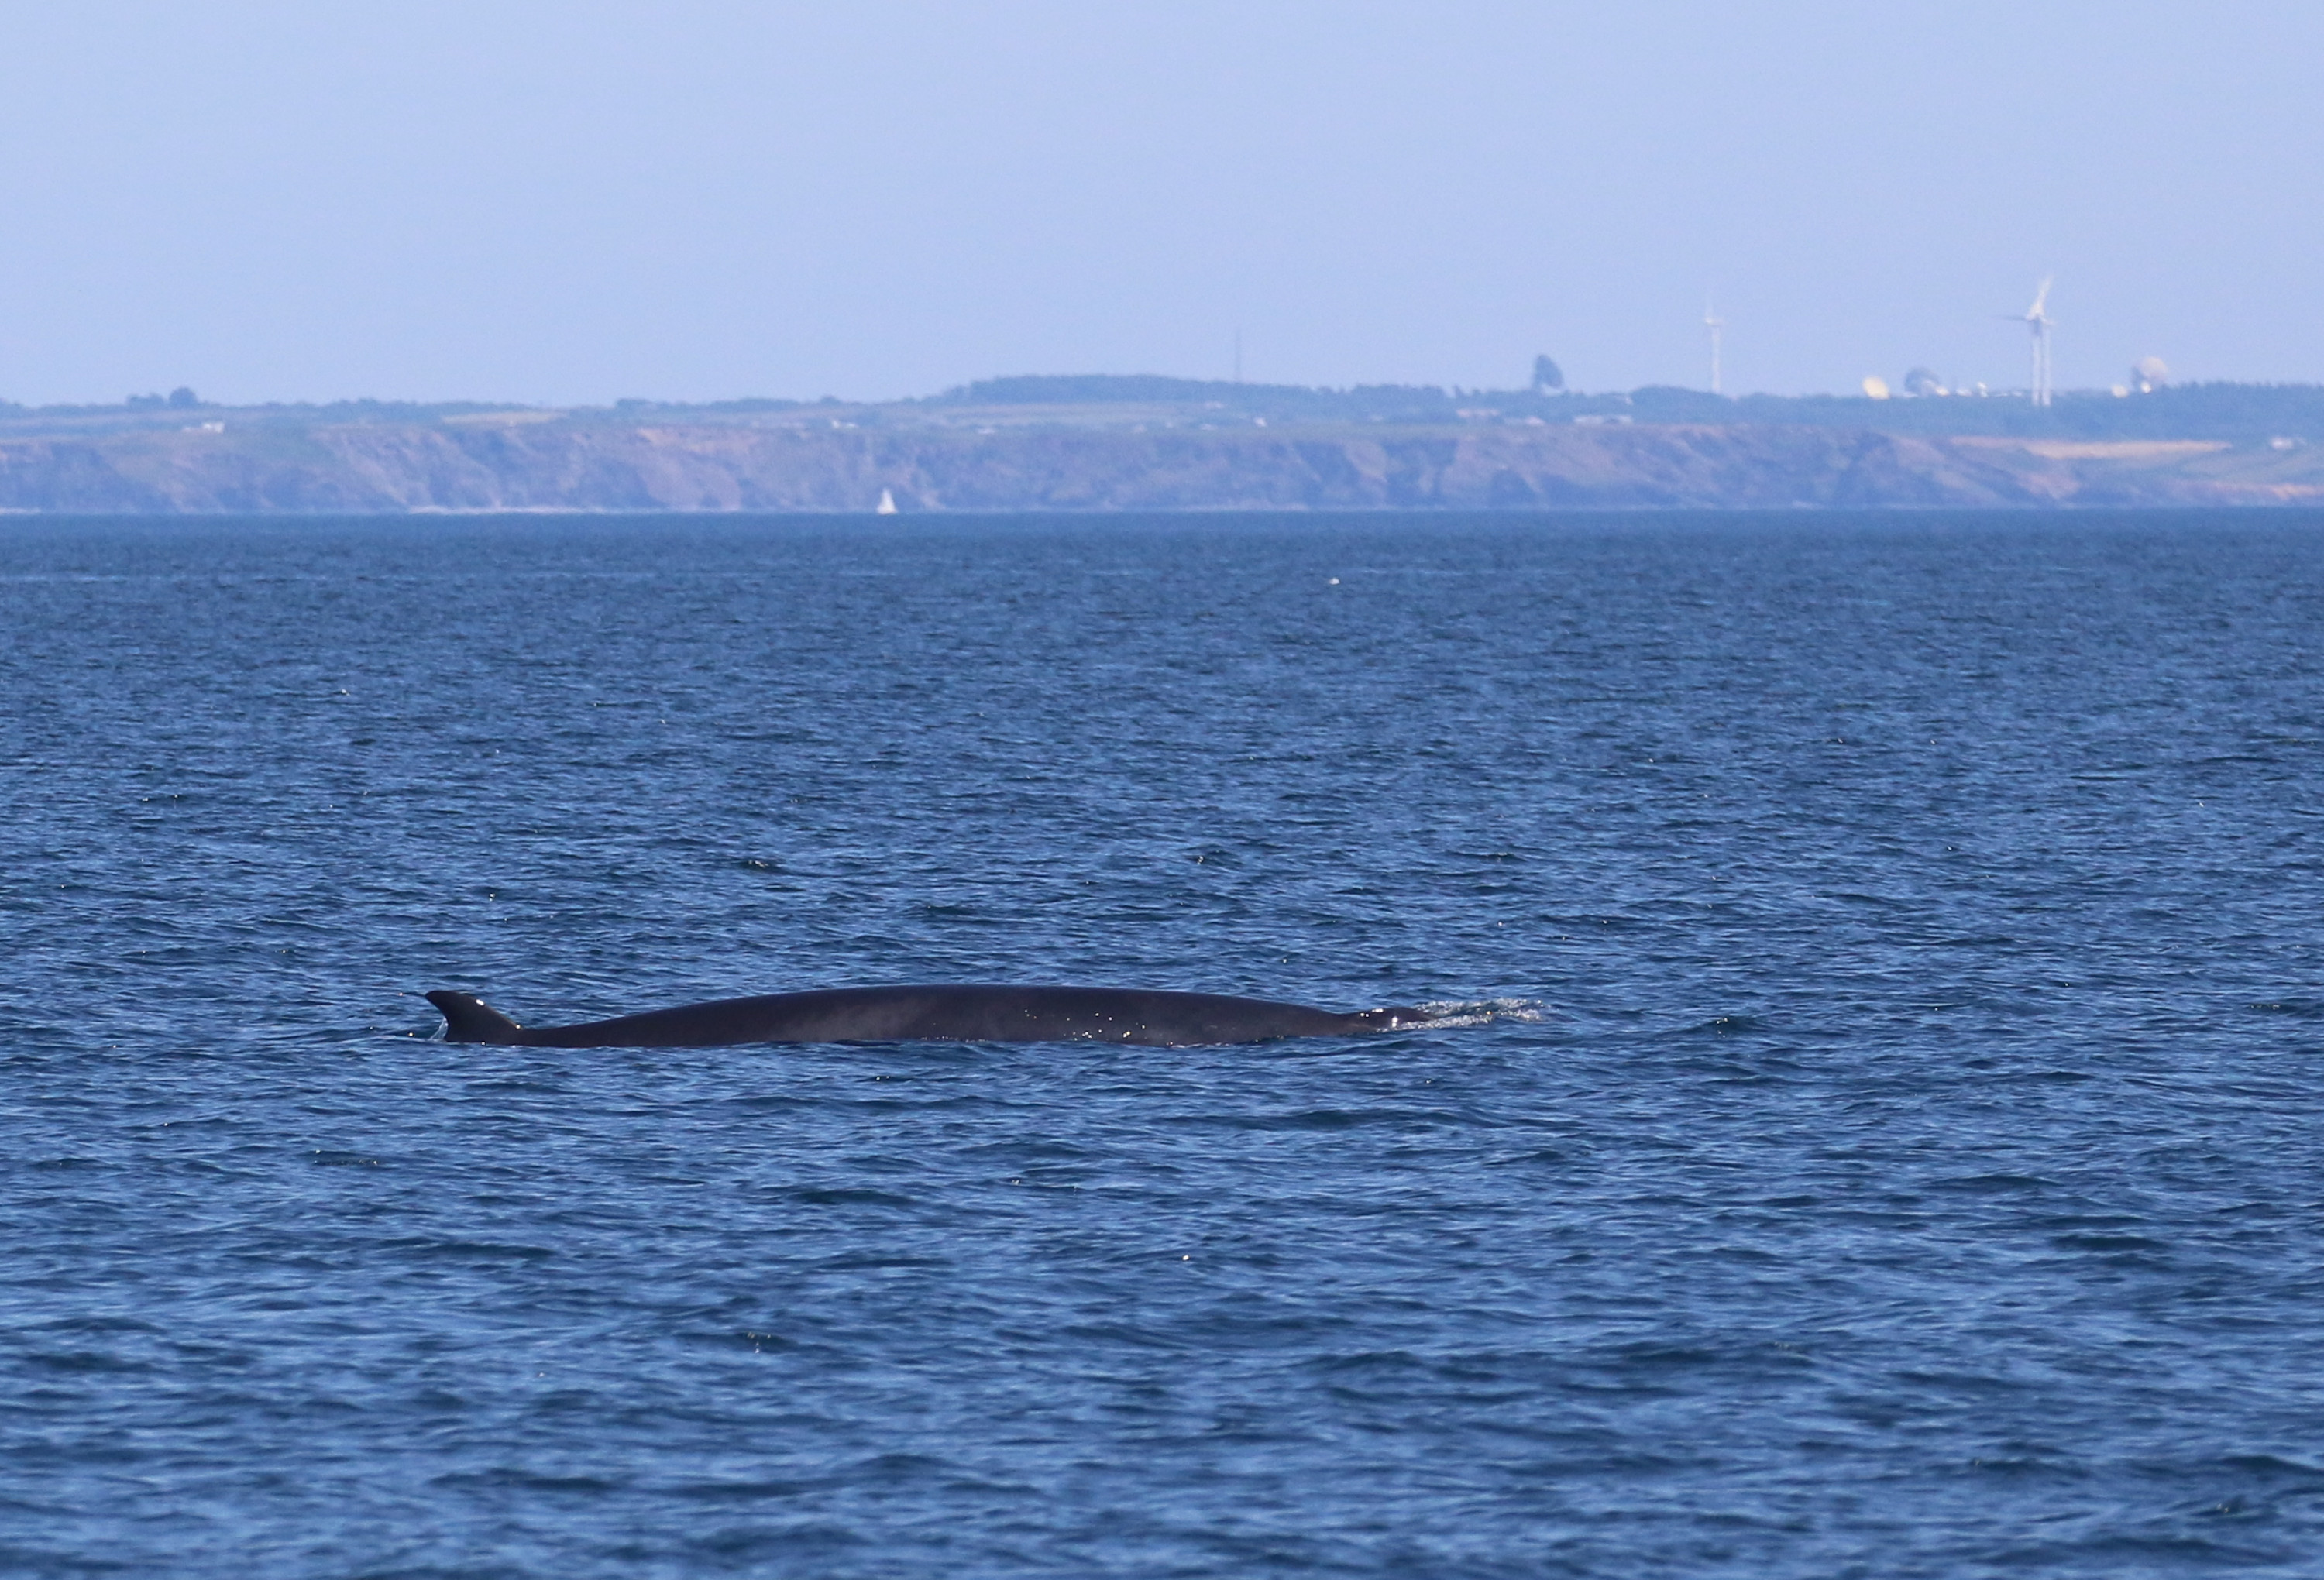 Mink whale off the coast of Penzance by Marine Discovery Penzance